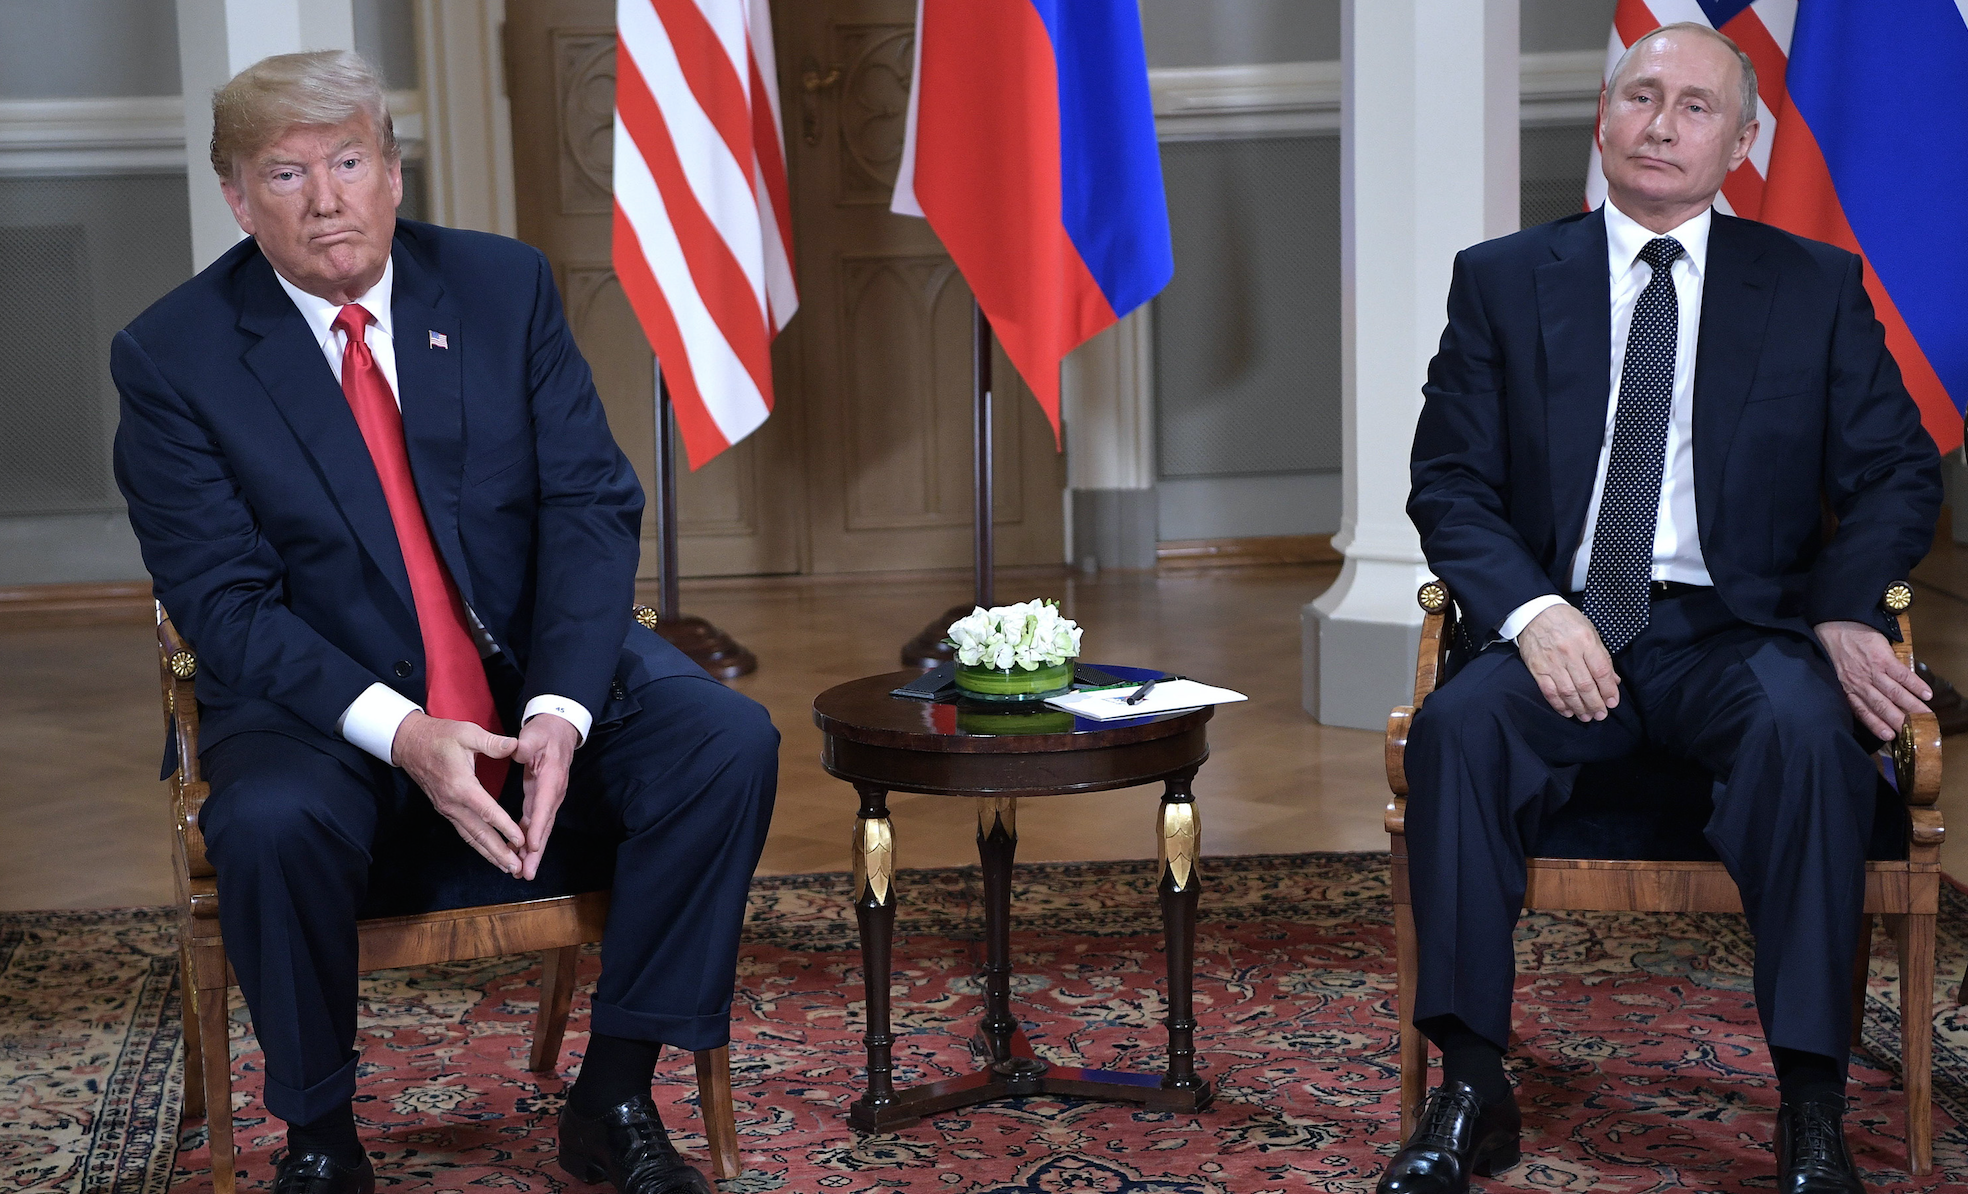 U.S. President Donald Trump, left, and Russian President Vladimir Putin during a meeting on Monday, July 16, 2018 in Helsinki, Finland. (Nikolsky Alexei/TASS/Zuma Press/TNS)